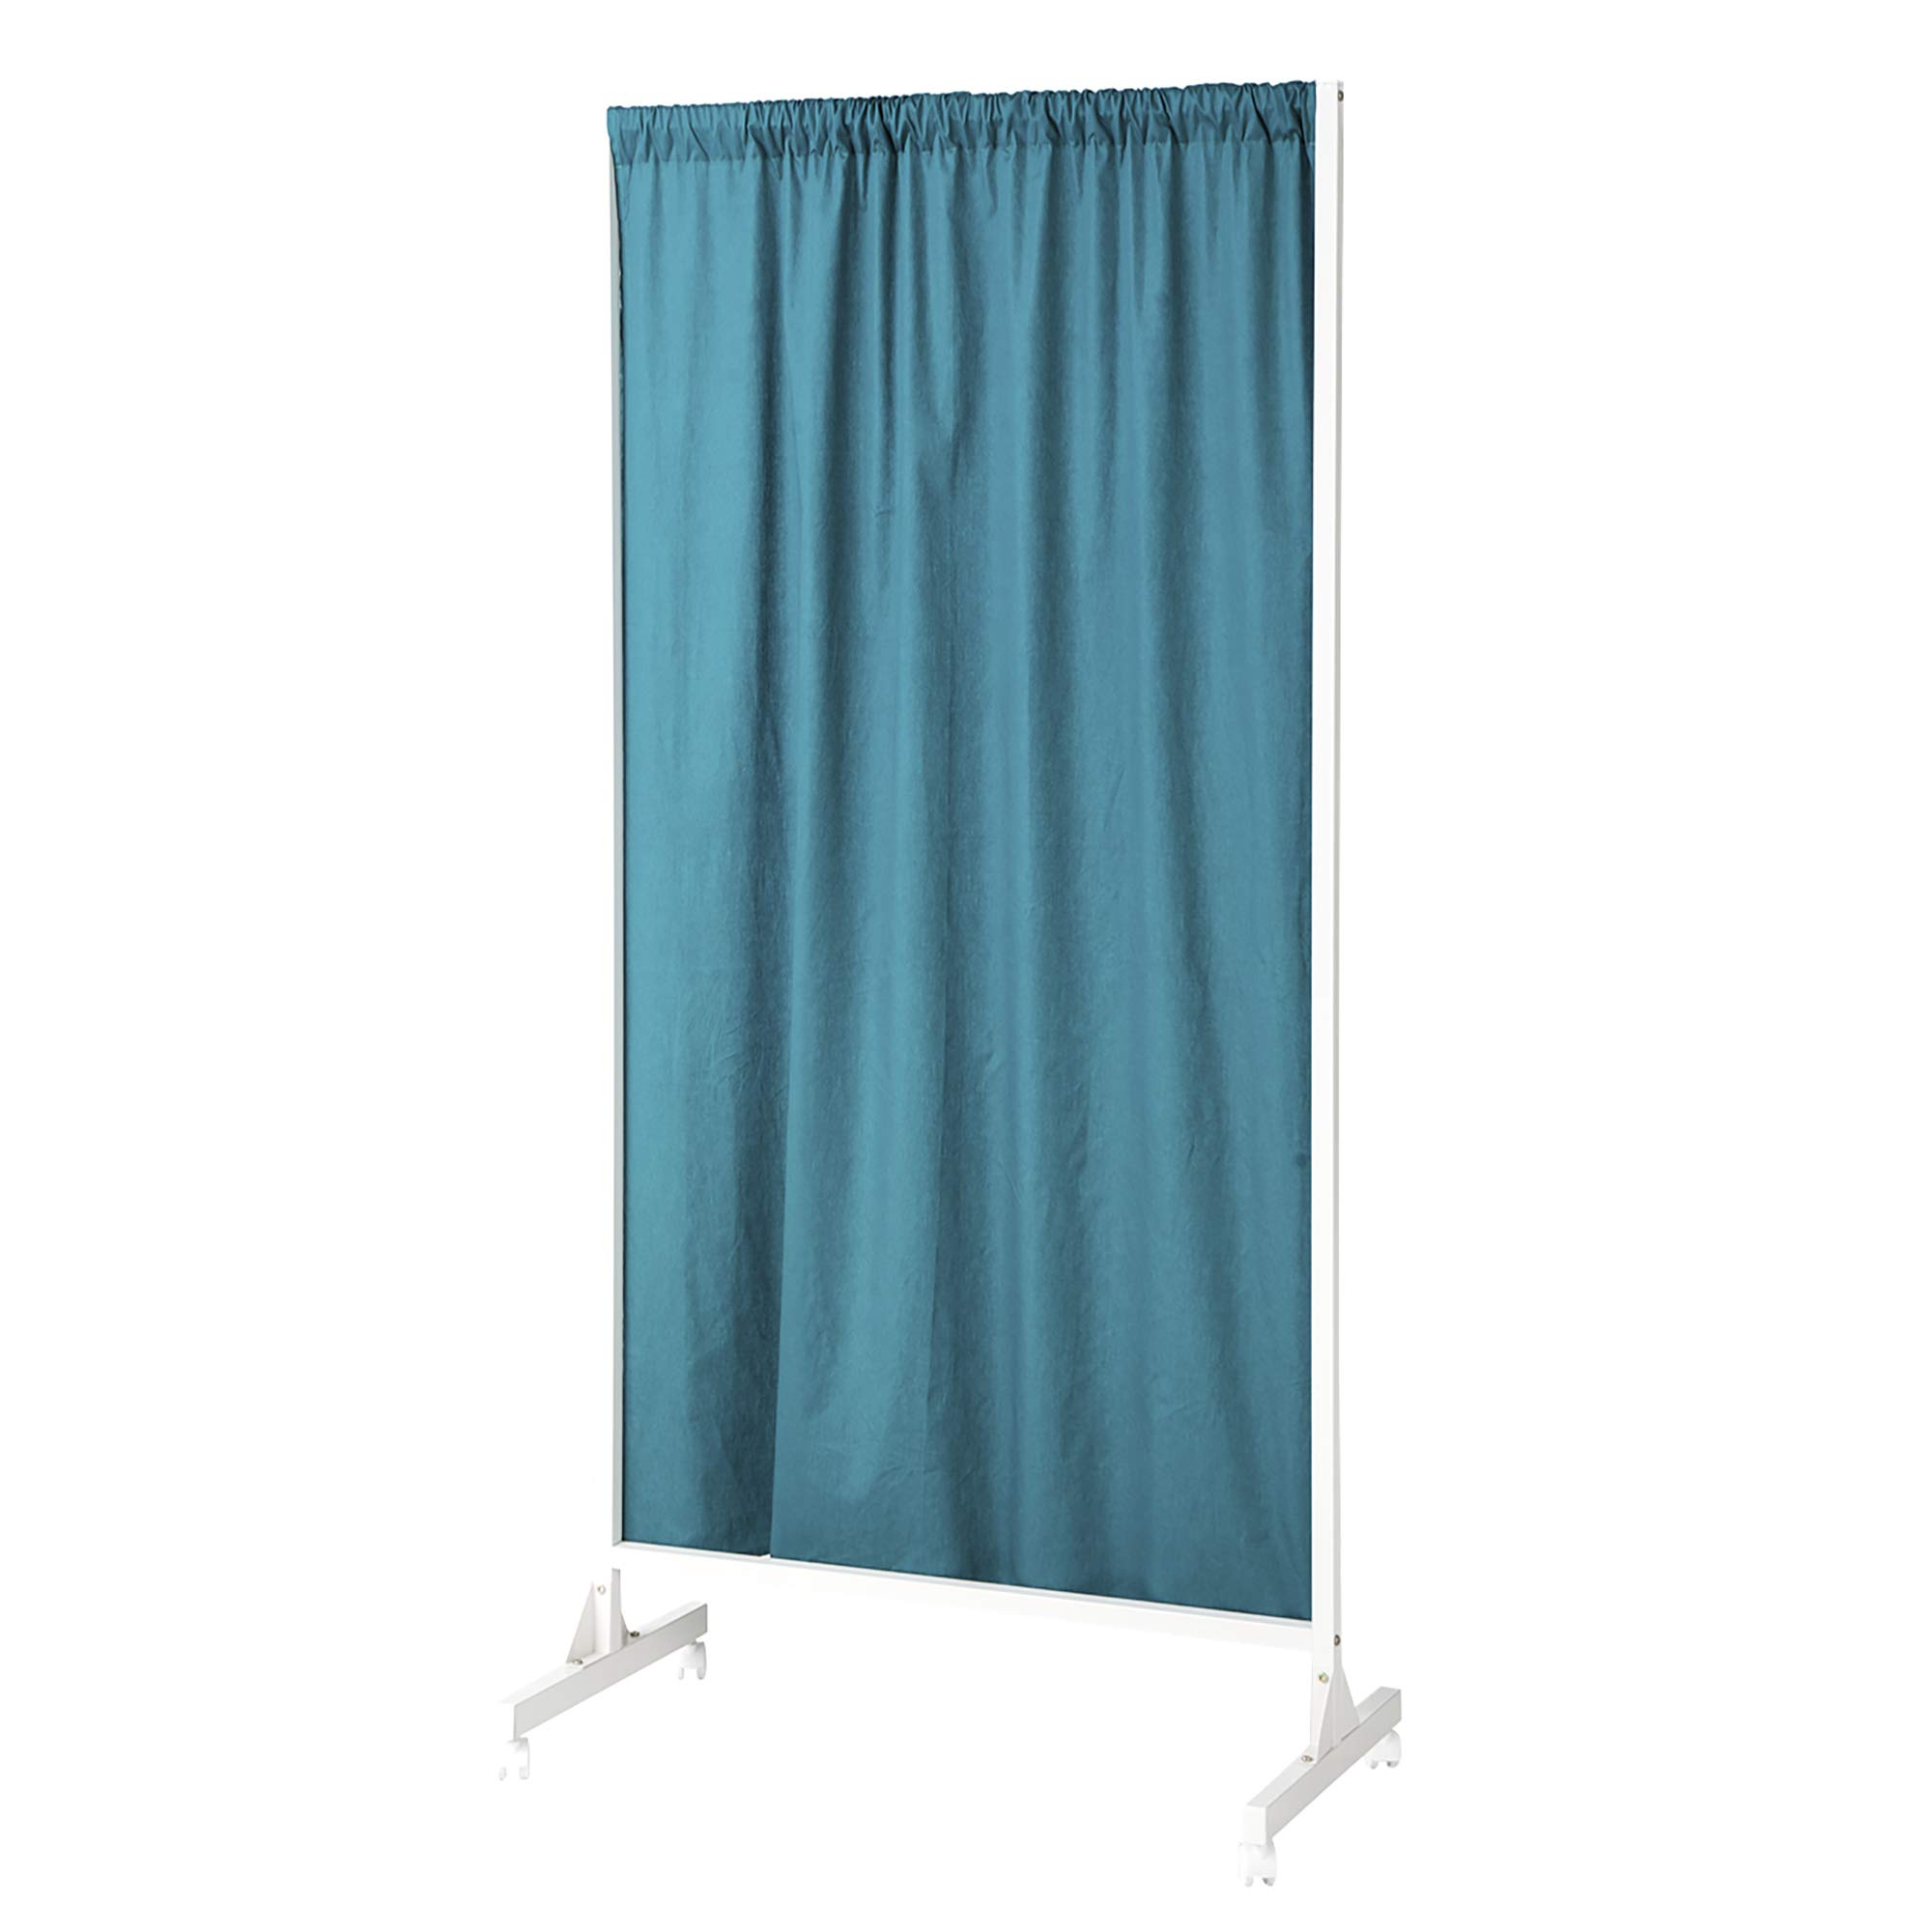 Don't Look at Me - Partial Room Divider - White Frame with Ocean Depths Teal Cotton Fabric